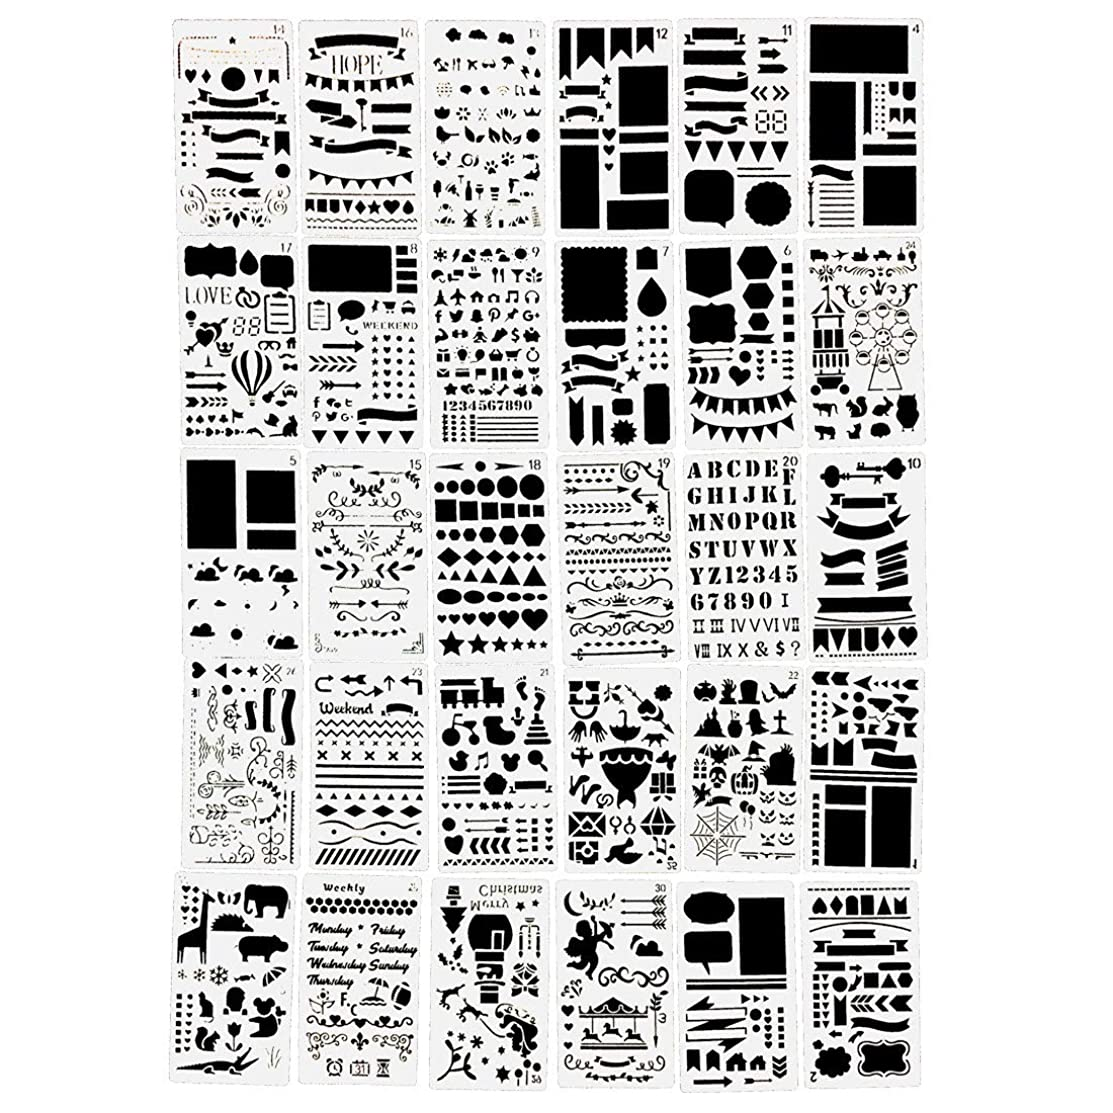 30PCs Letter and Number Stencils DIY Drawing Templates Bullet Journal Stencils Diary Notebook Scrapbook Process Cutting Mold